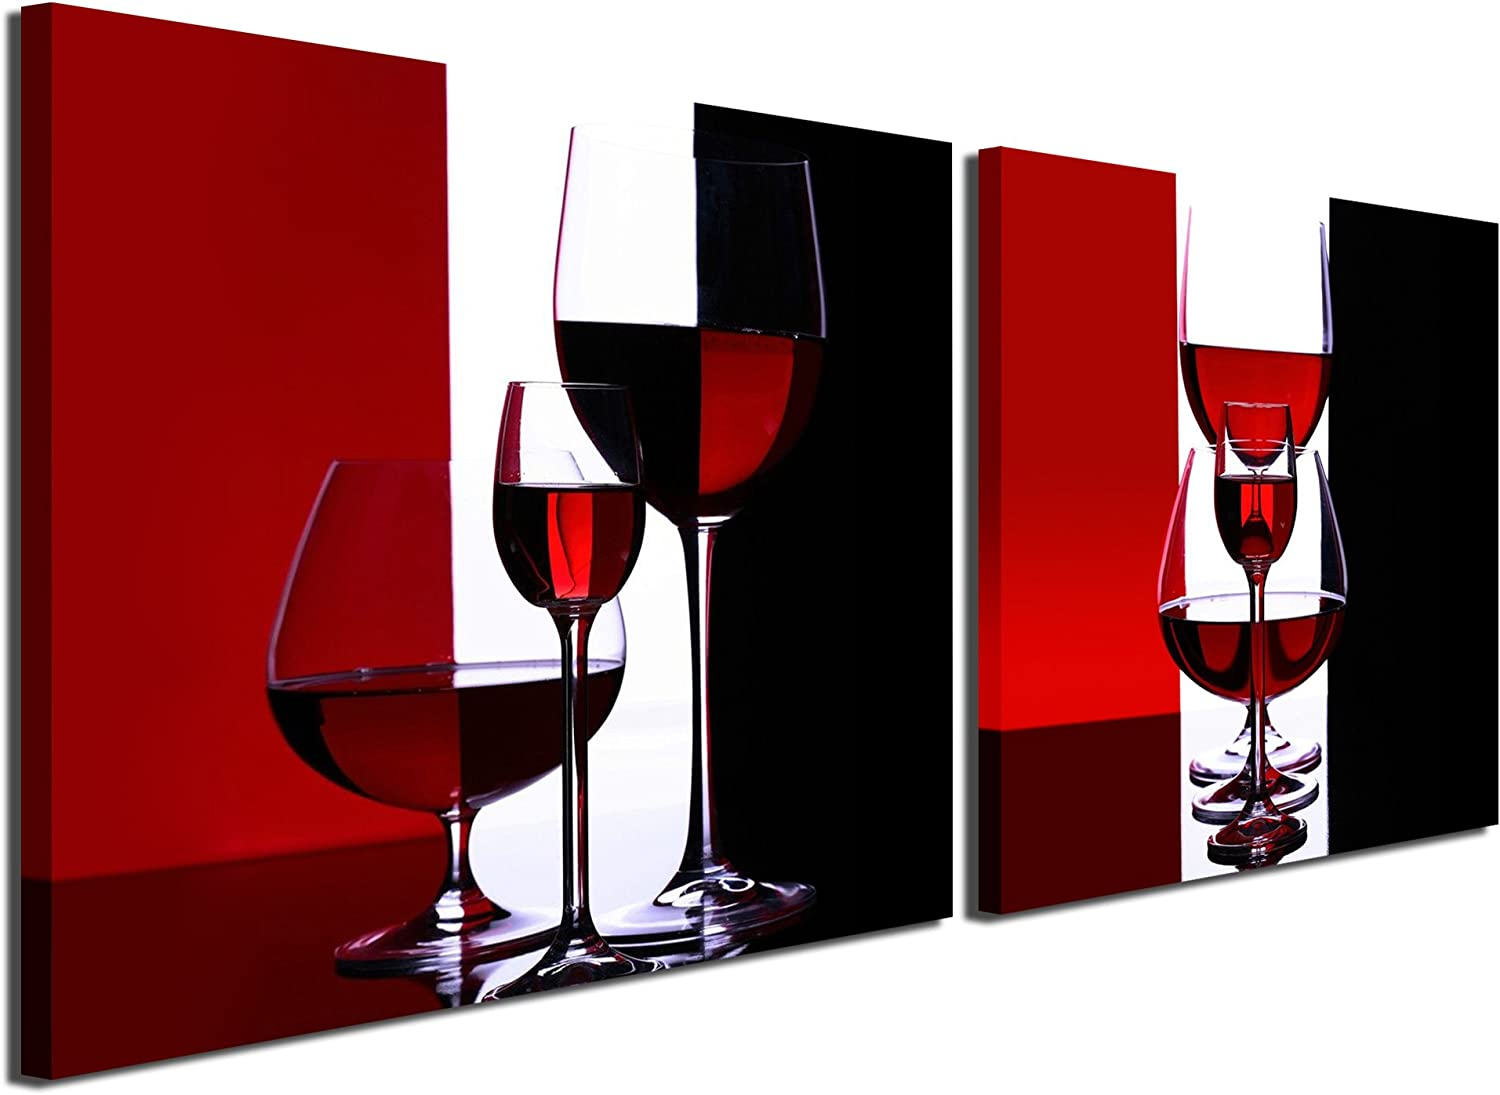 Amazon Com Gardenia Art Wine Canvas Paintings Wall Art Pictures Abstract Wine Glass In Red Black White For Kitchen Bedroom Living Rommg Decoration 12x12 Inch Per Piece 2 Pieces Per Set Posters